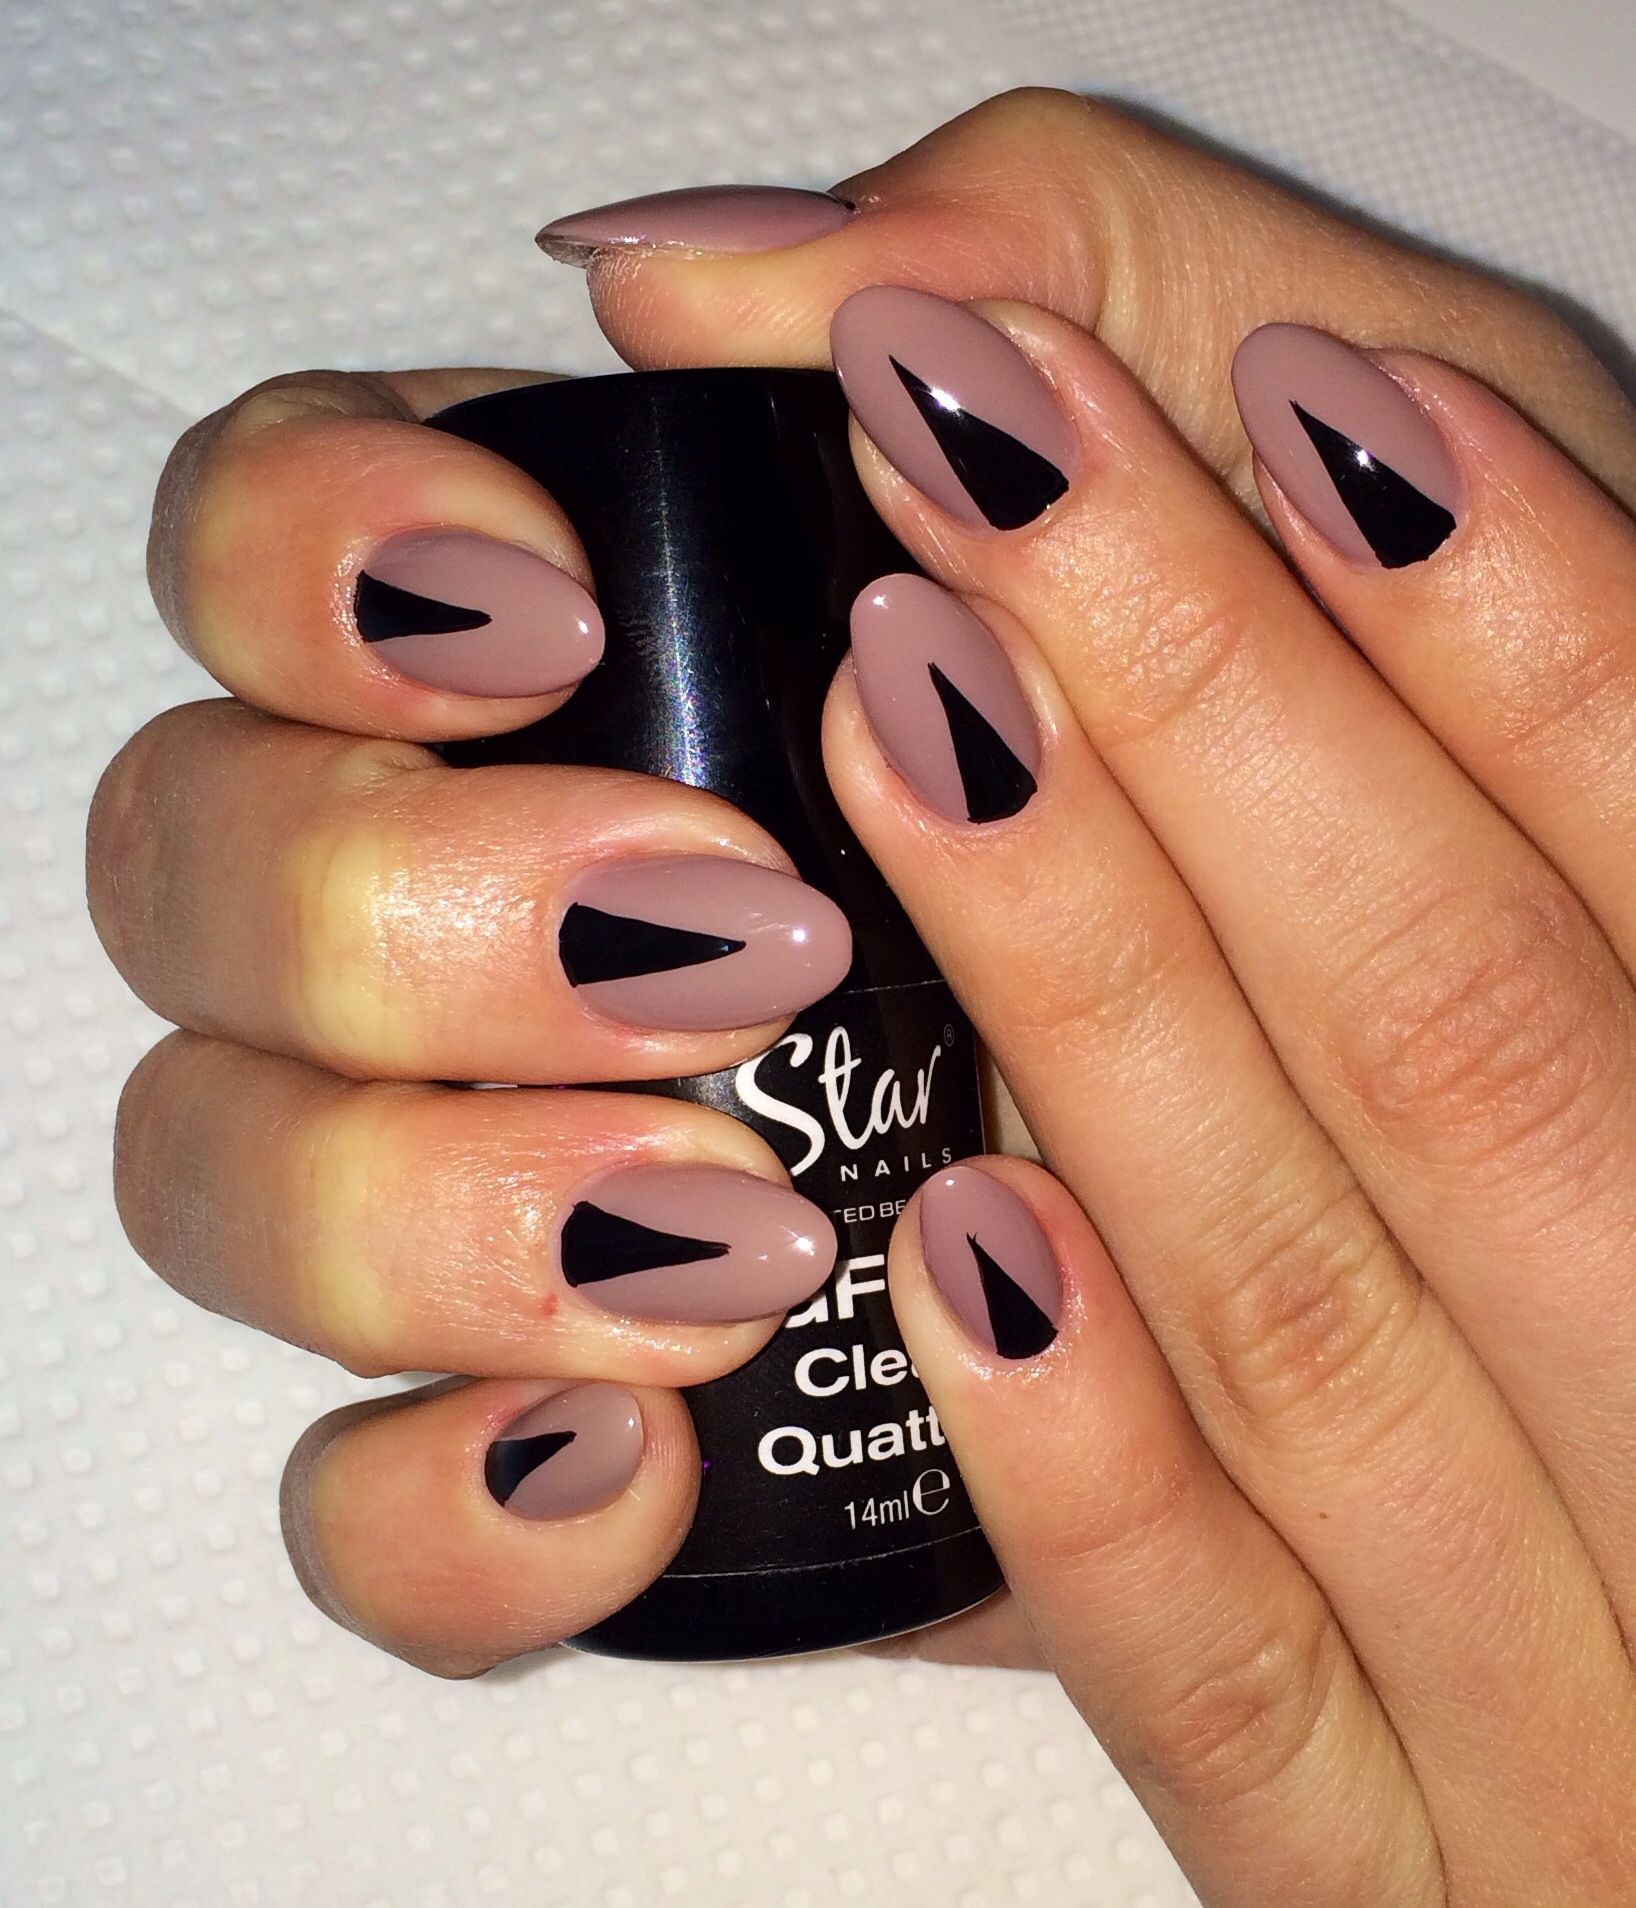 Nude taupe almond nails with black triangle nail art summer 2014 taupe color nails almond shaped nails black triangle on nude nails nail ideas spring summer 2014 design prinsesfo Choice Image